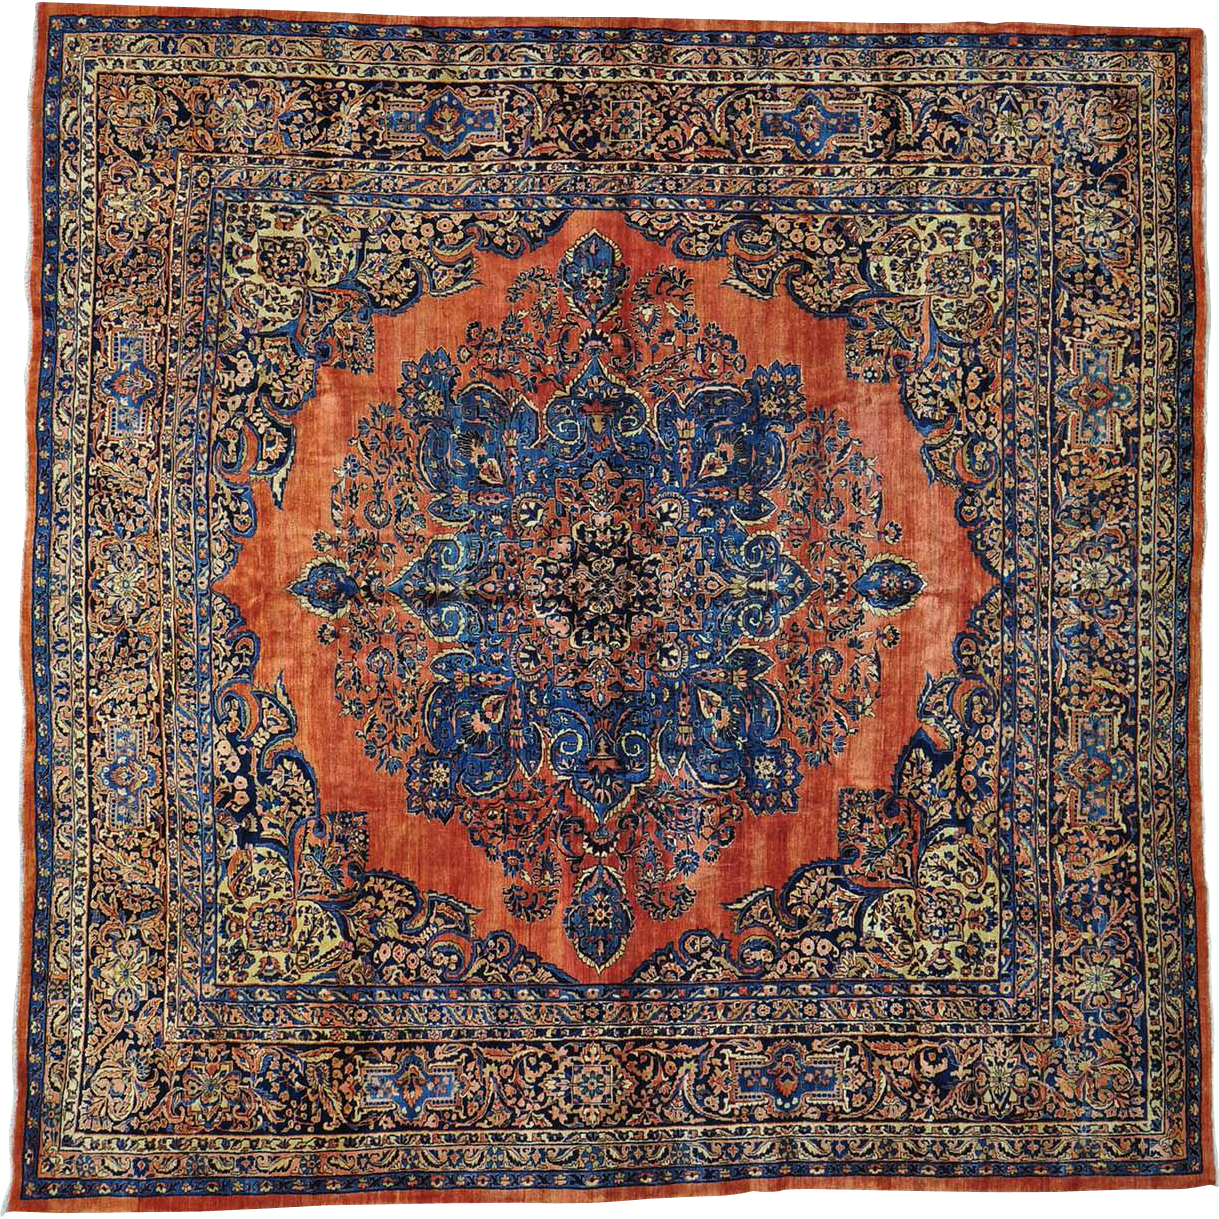 Oriental Rugs Red Bank Nj: Rust Red Antique Persian Sarouk Full Pile Square Oriental